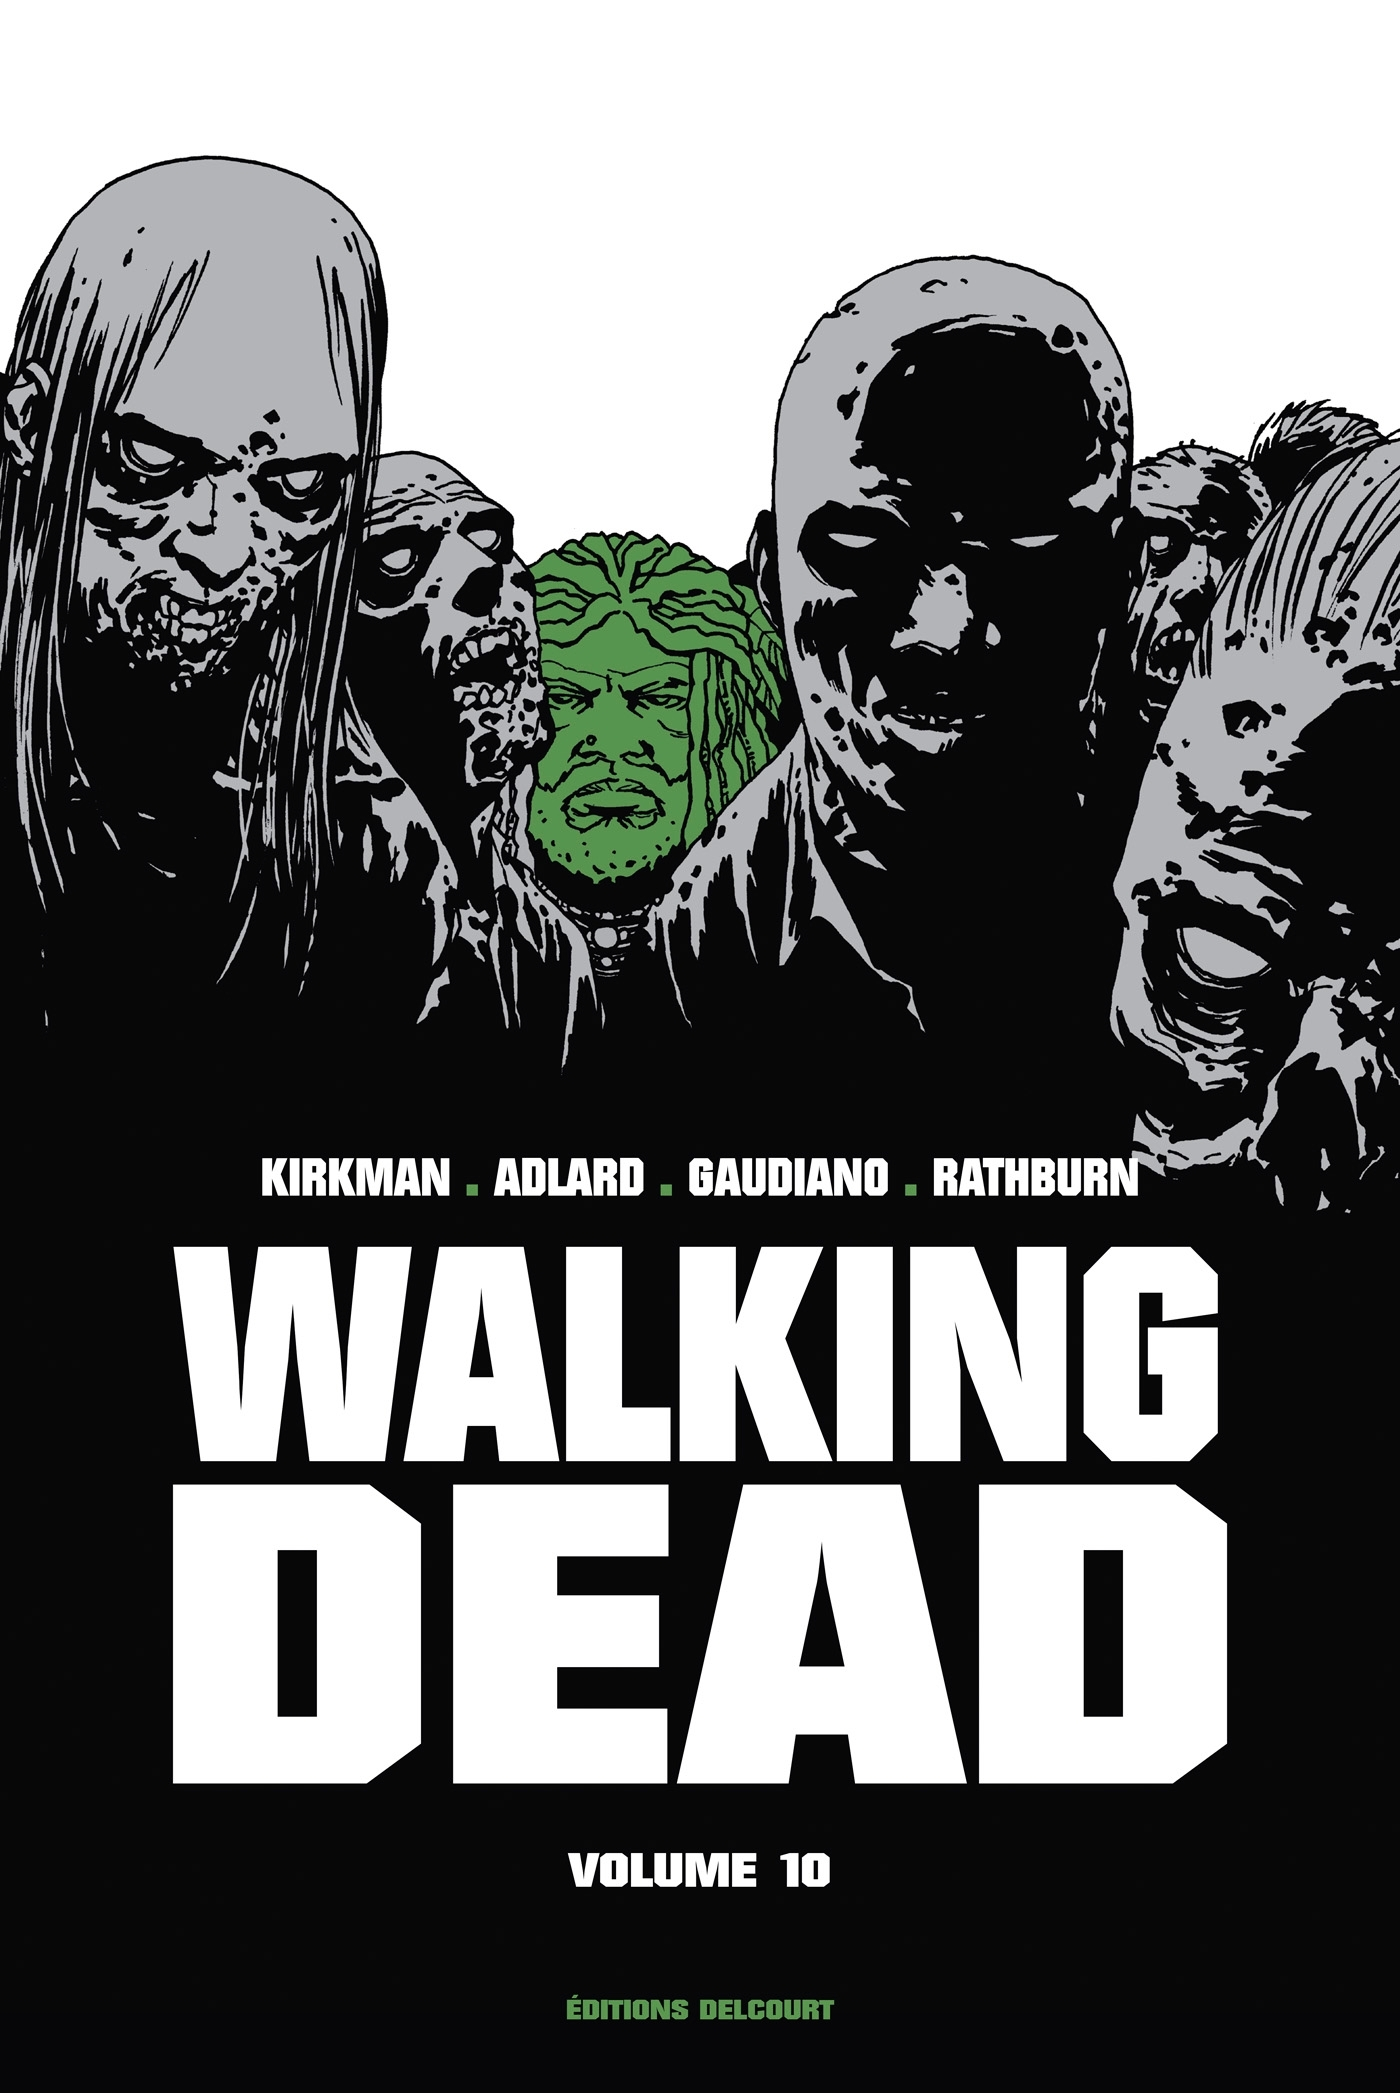 WALKING DEAD PRESTIGE VOLUME 10 - T10